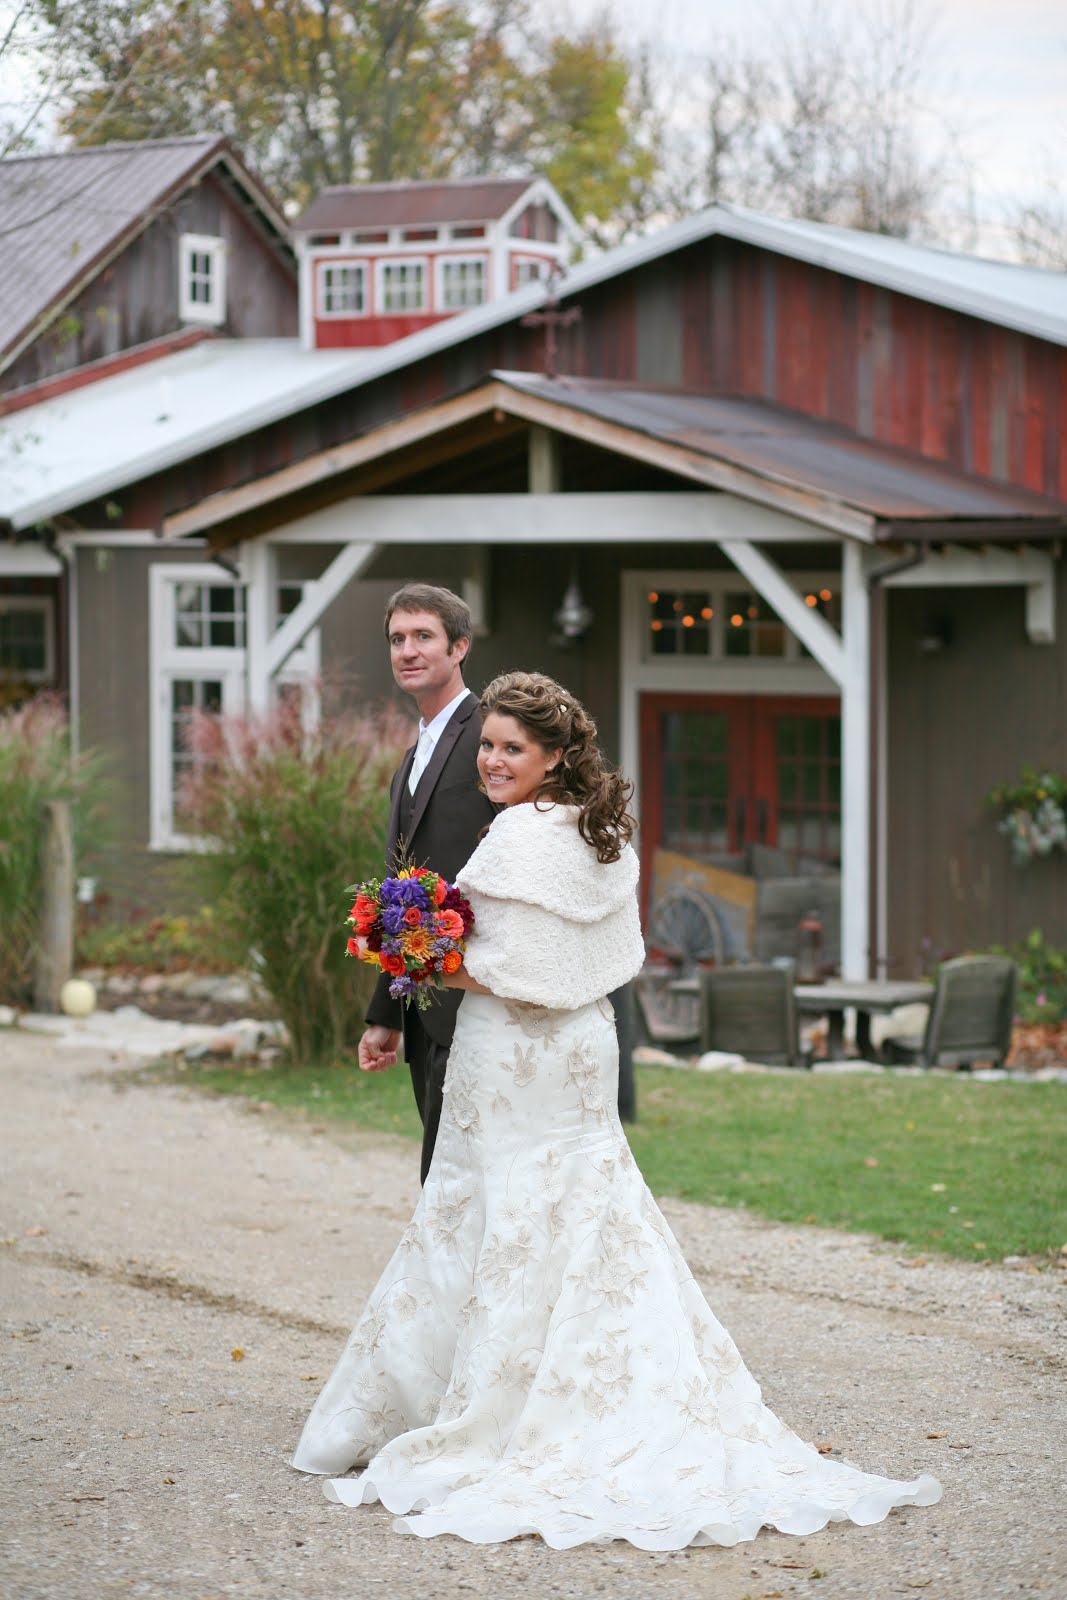 Millcreek Barns wedding